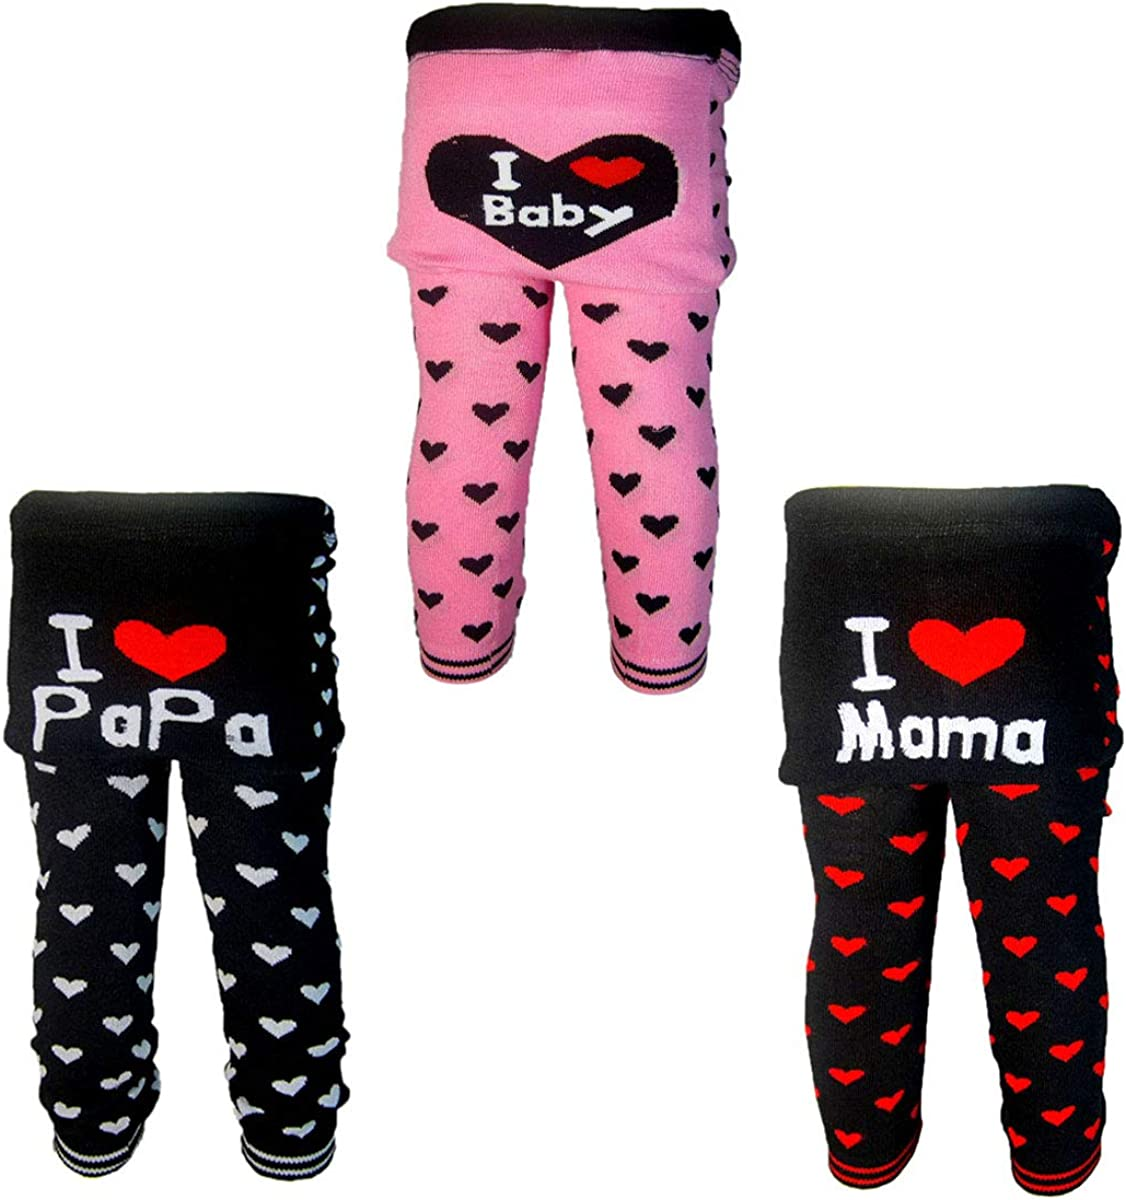 3 Pants 0-24 Months Baby Girls Toddler Leggings Trousers Knitted Pants